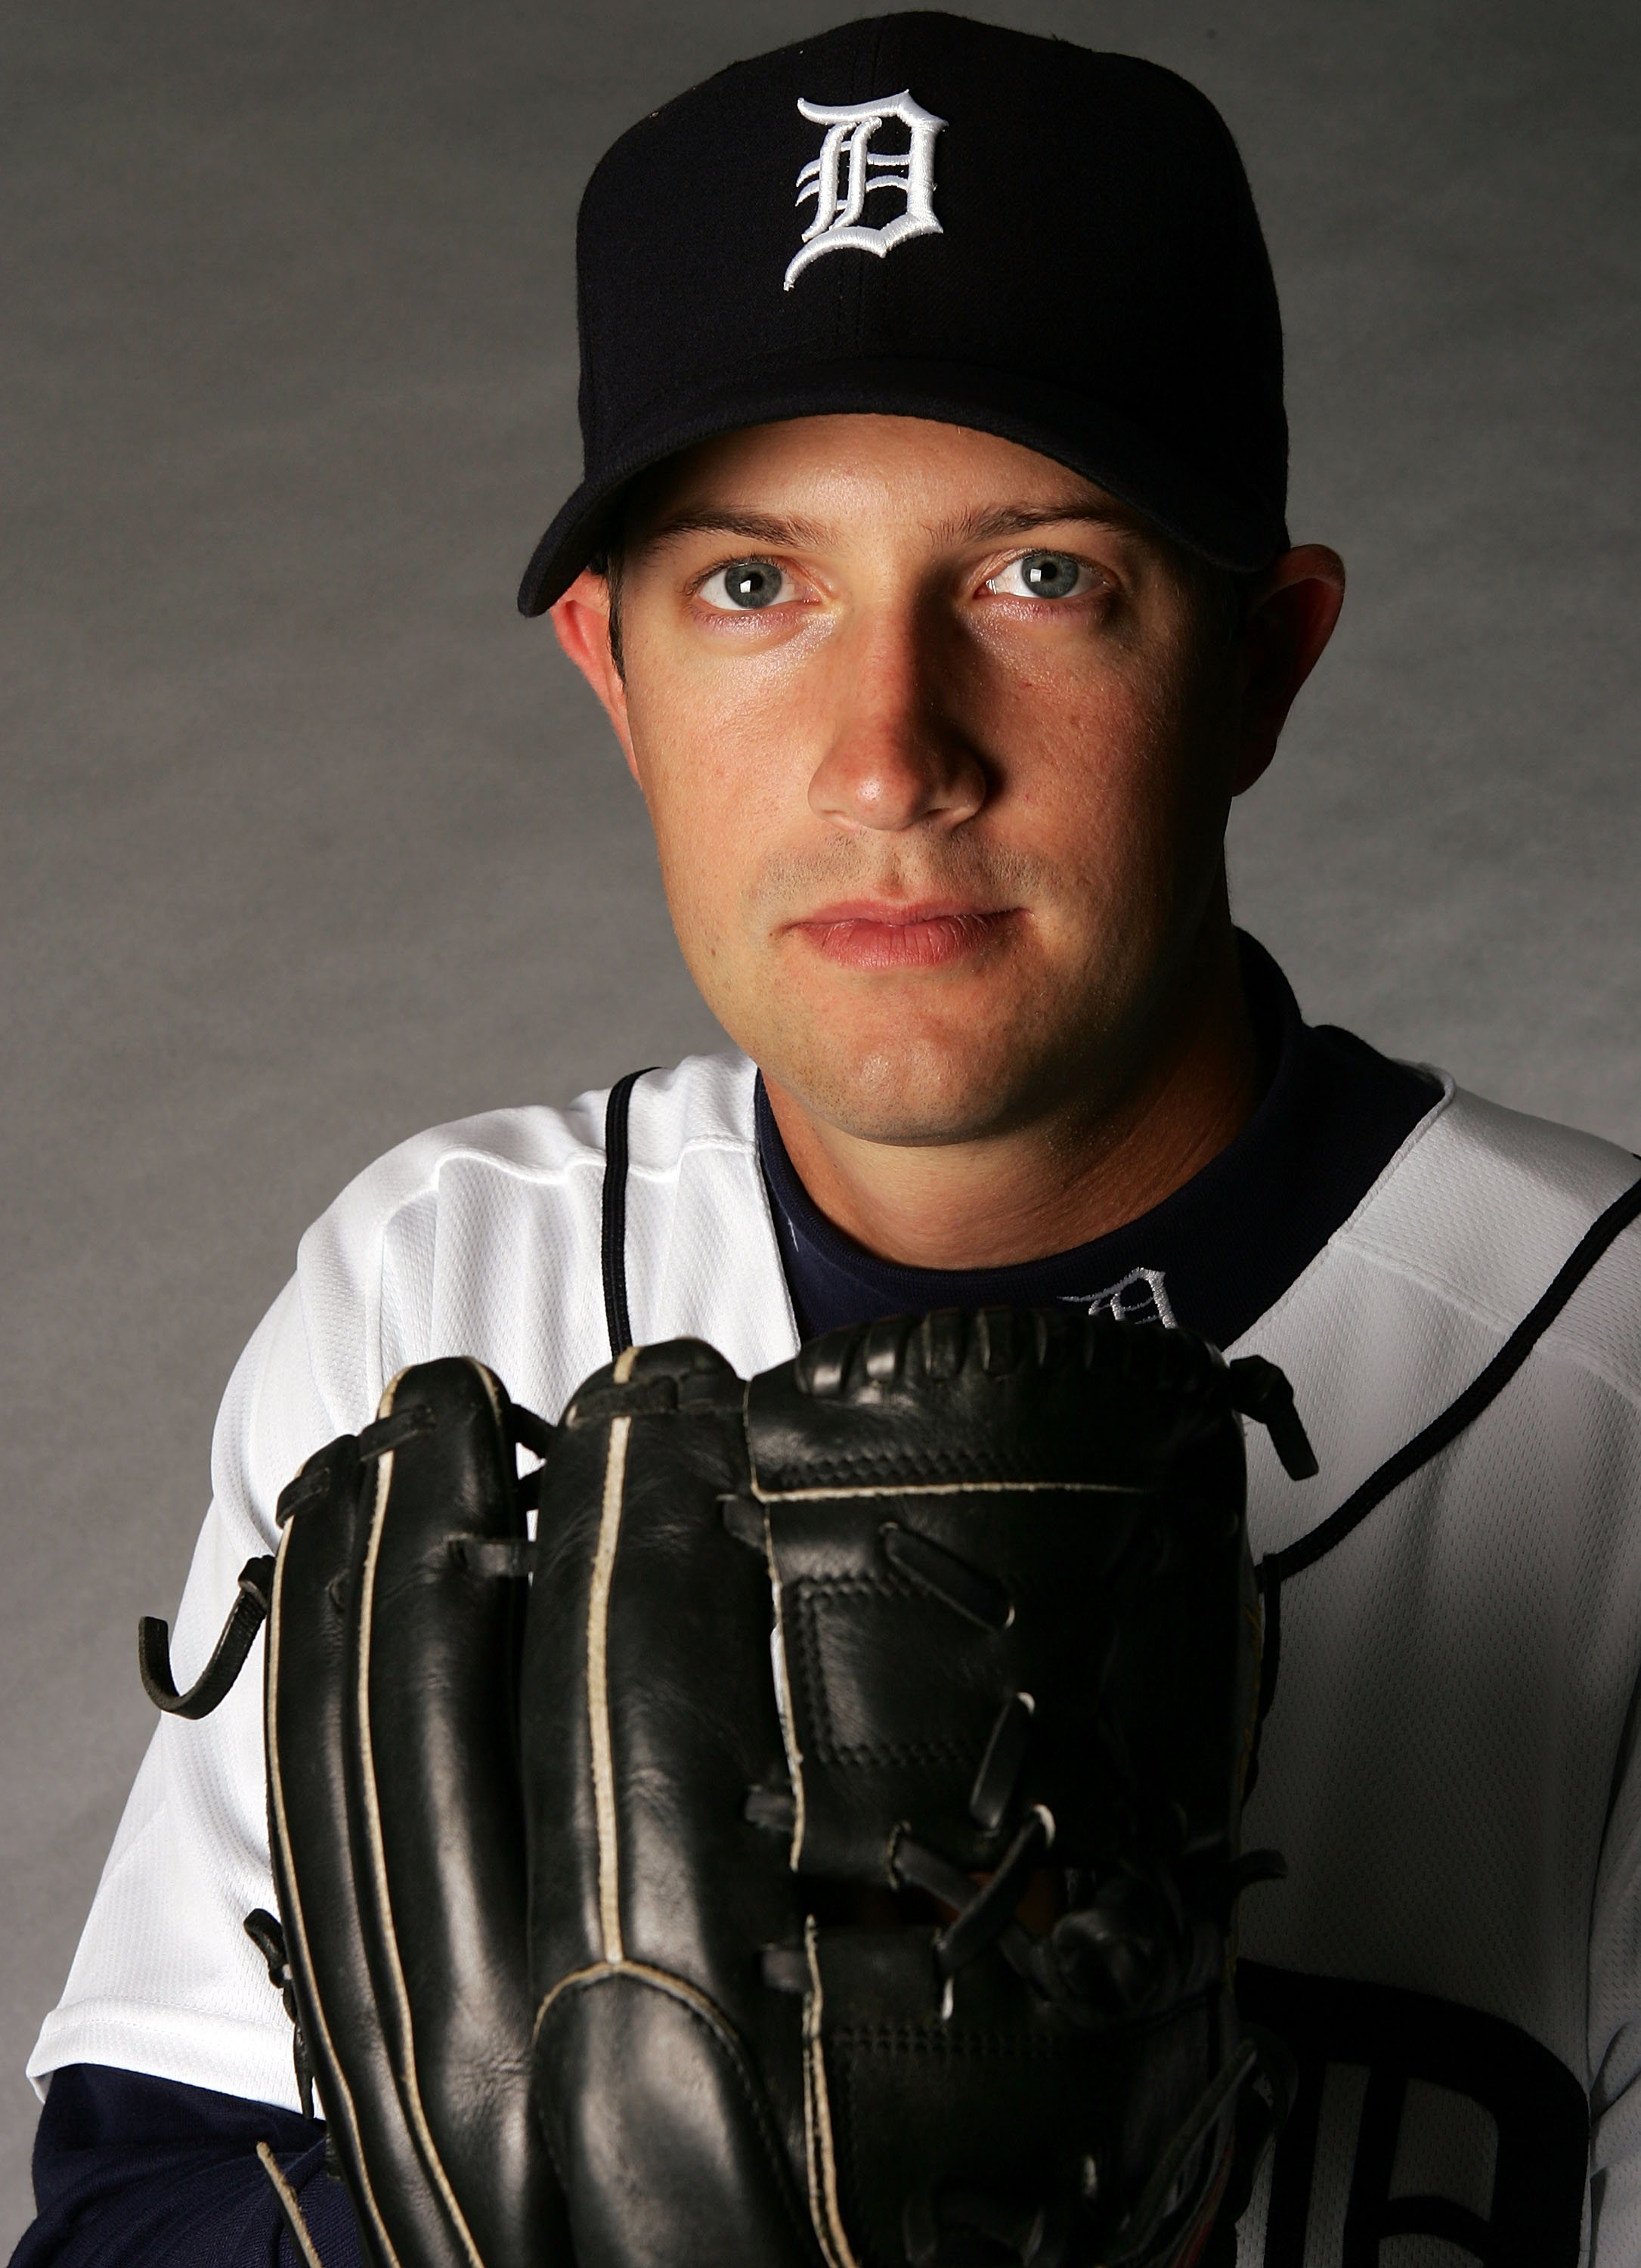 LAKELAND, FL - FEBRUARY 24:  Kyle Sleeth #34 poses for a portrait during the Detroit Tigers Photo Day on February 24, 2007 at Joker Marchant Stadium in Lakeland, Florida.  (Photo by Elsa/Getty Images)